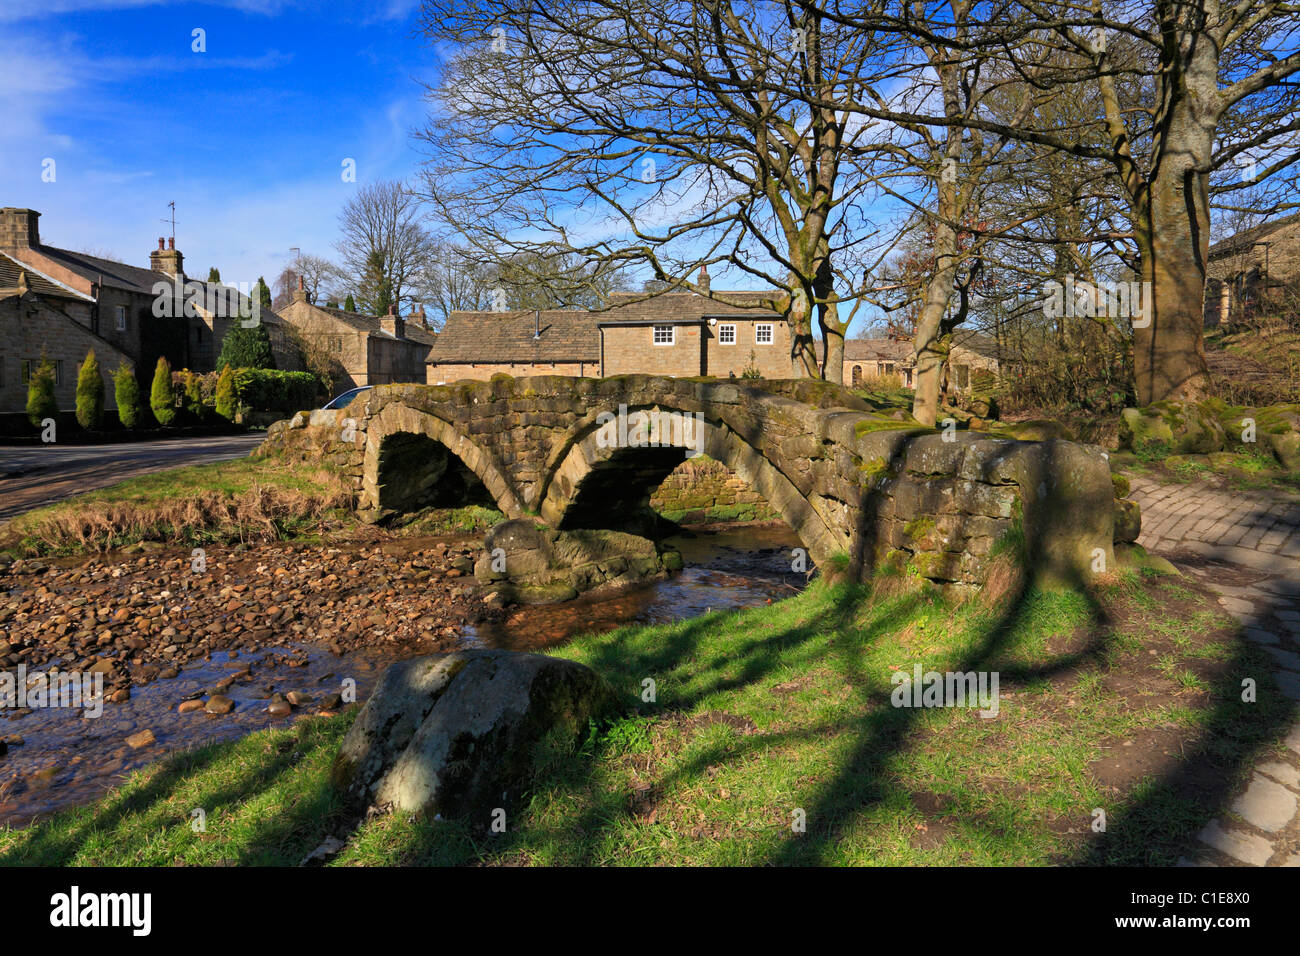 Ancient packhorse bridge at Wycoller Country Park on the Bronte Way, Wycoller, Colne, Pendle, Lancashire, England, - Stock Image